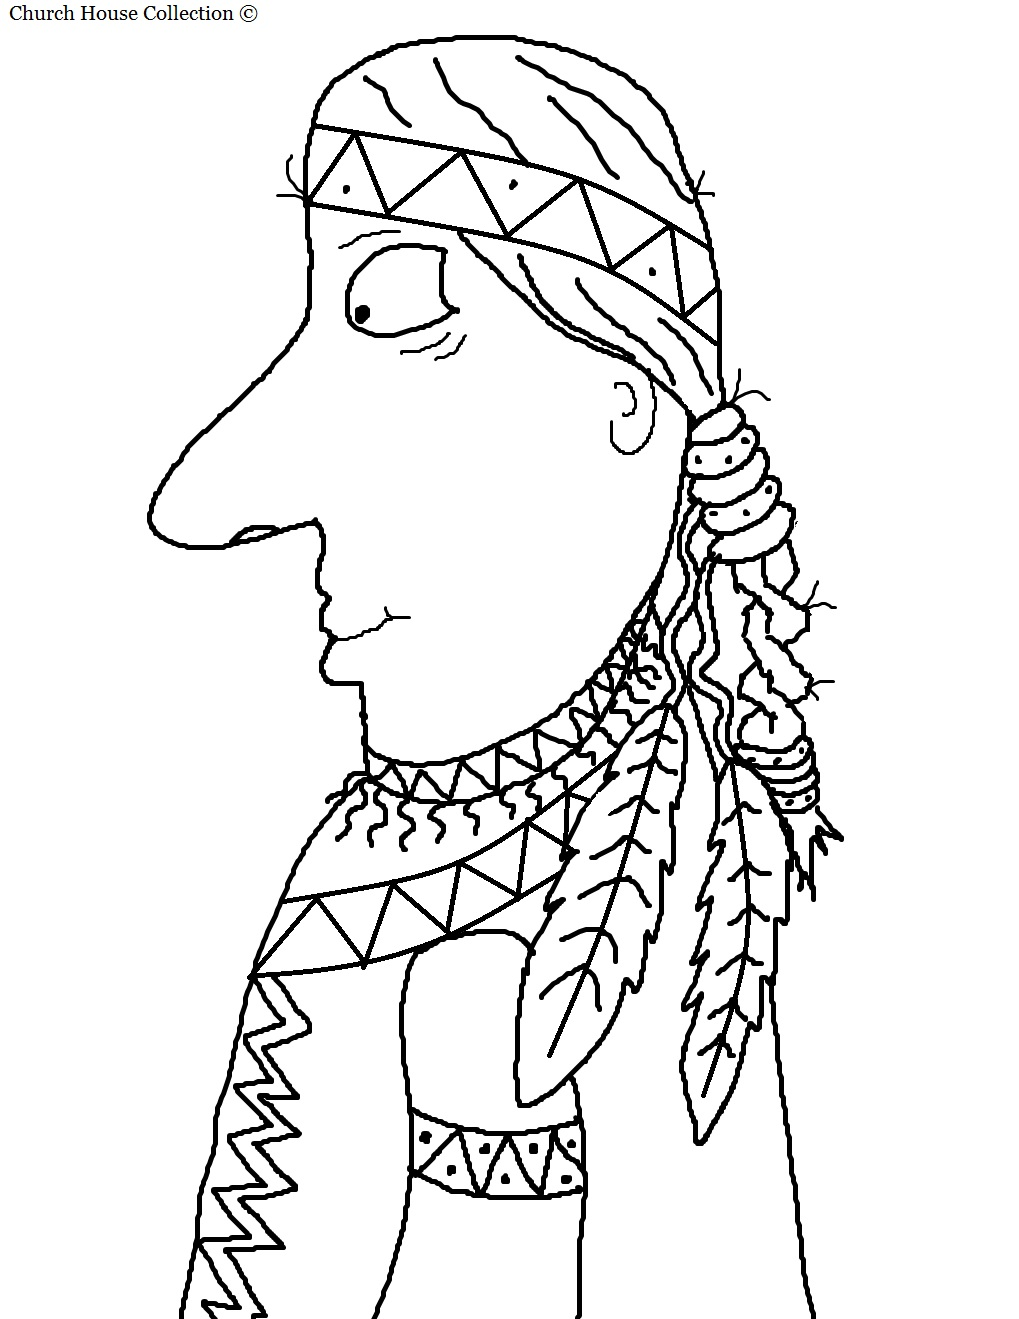 Church house collection blog free printable pilgrim for Indian coloring pages for thanksgiving